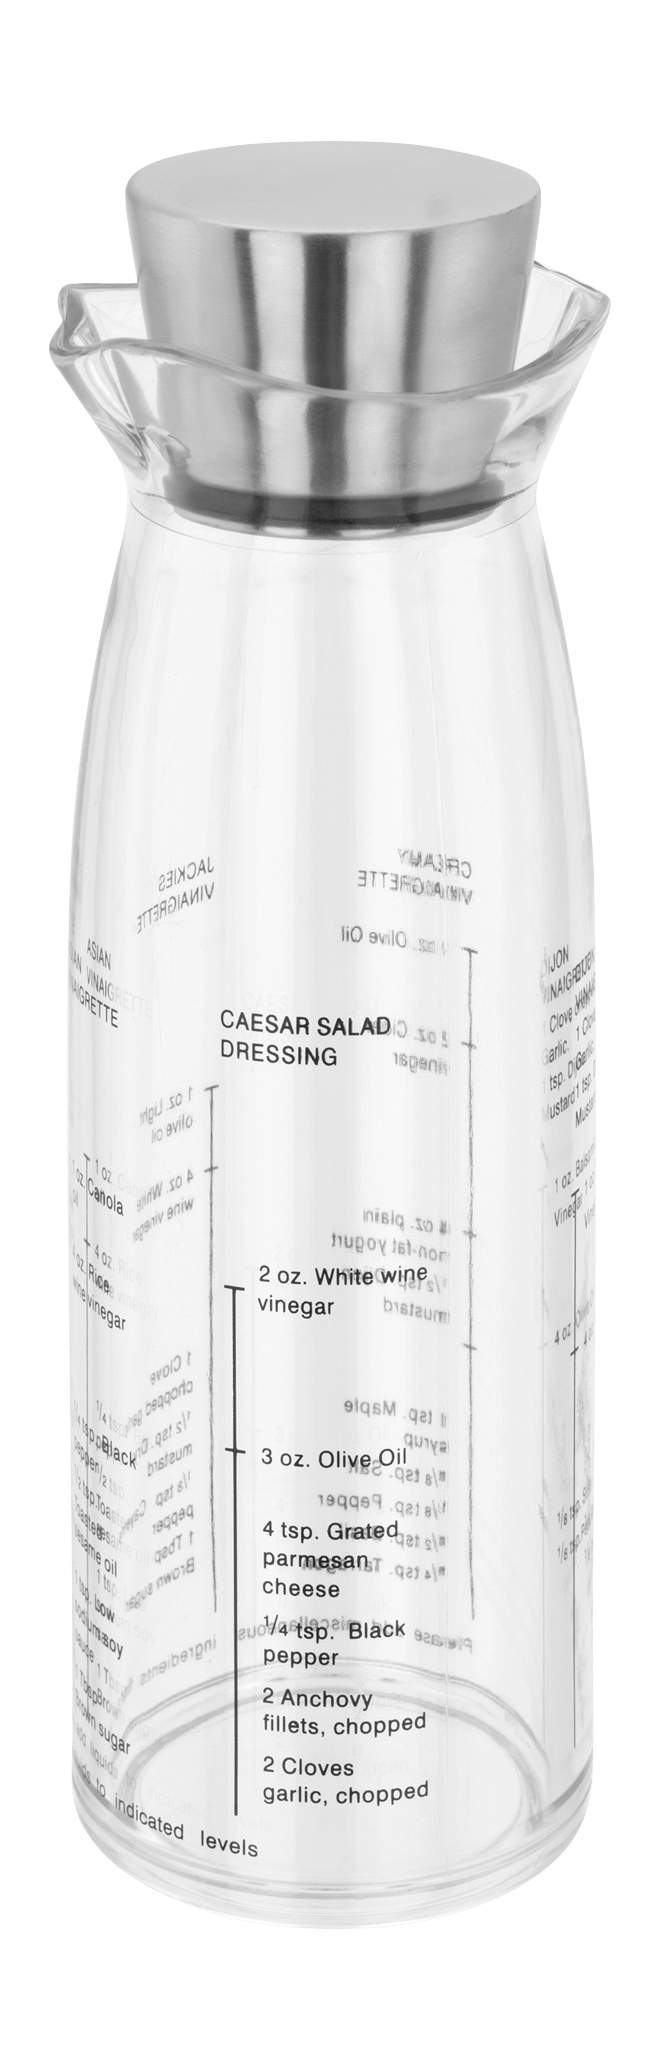 Judge Kitchen Salad Dressing Bottle